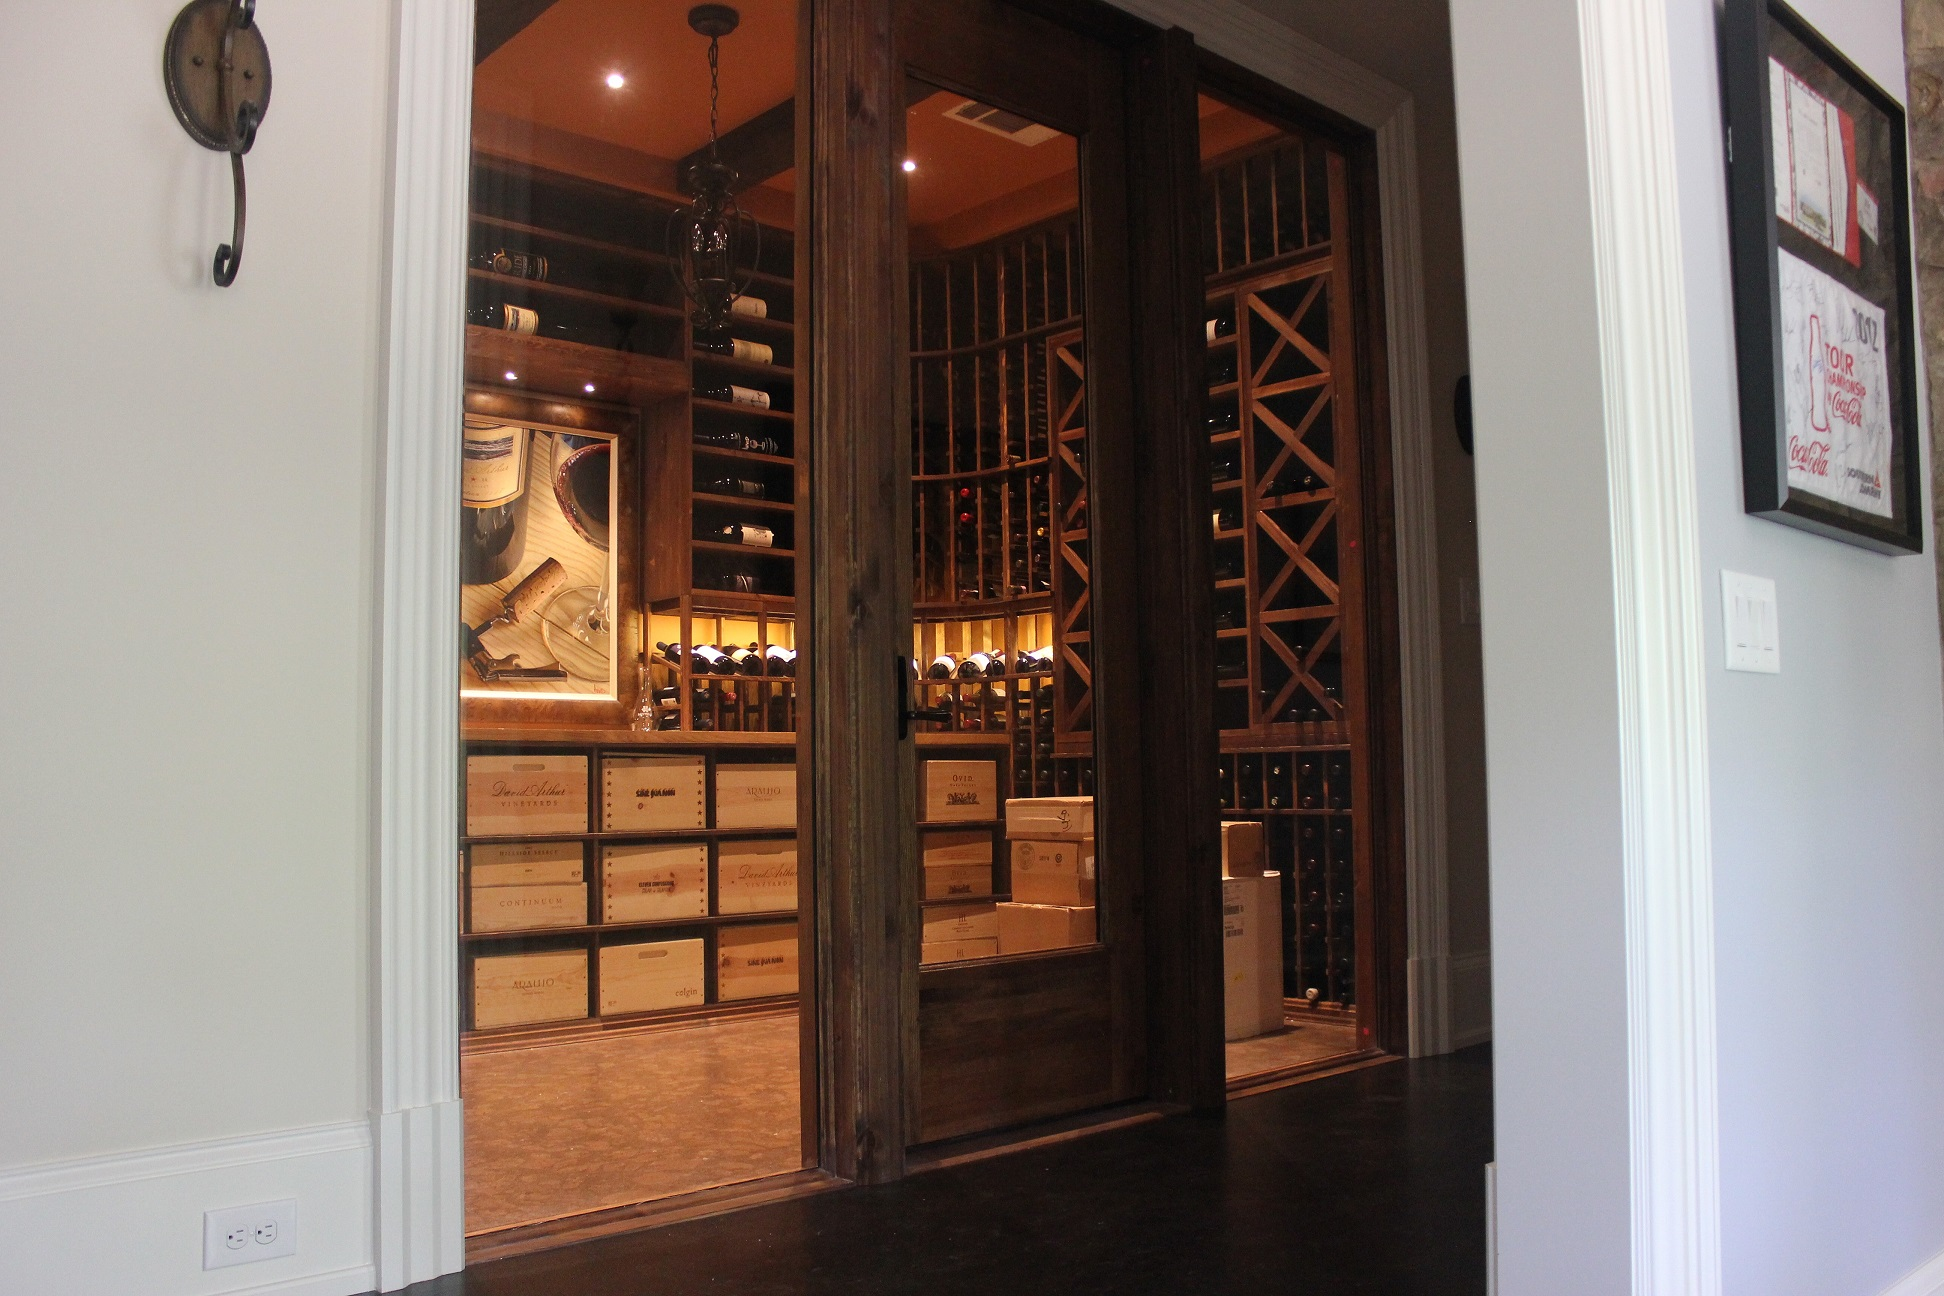 Classy Wine Cellar Innovations Project Gallery Wine Wine Cellar Innovations Uk Wine Cellar Innovations Atlanta houzz-03 Wine Cellar Innovations